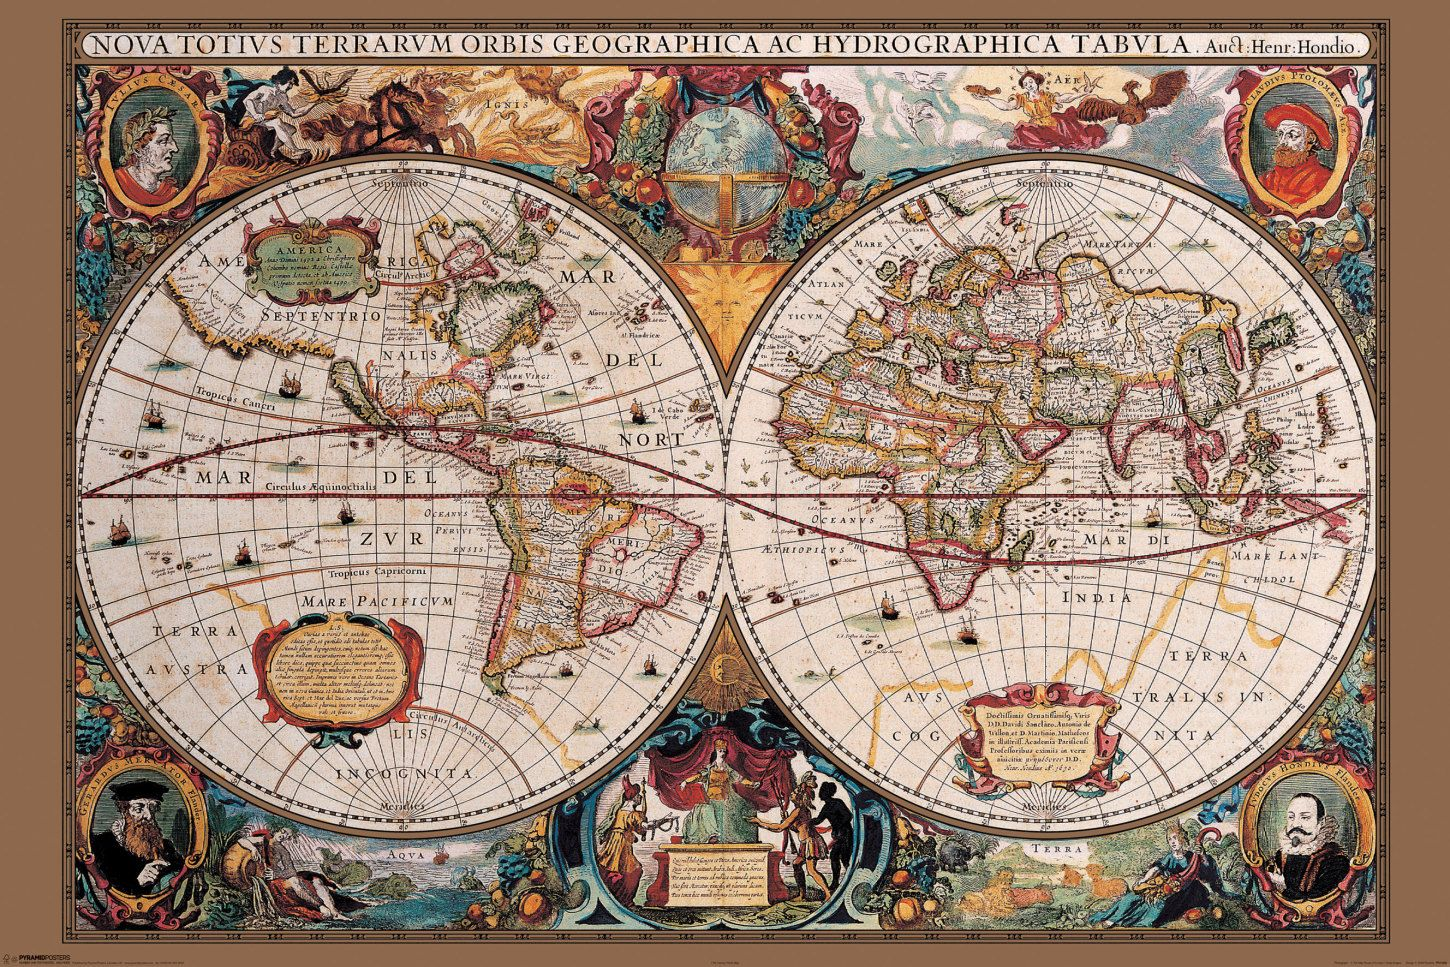 Old world map poster milan tourist attractions map world map 1450jpg 1450967 art unsorted pinterest 40ca4989a73db7592a1673922d032bb0 291678513348342847 old world map poster old world map poster gumiabroncs Choice Image